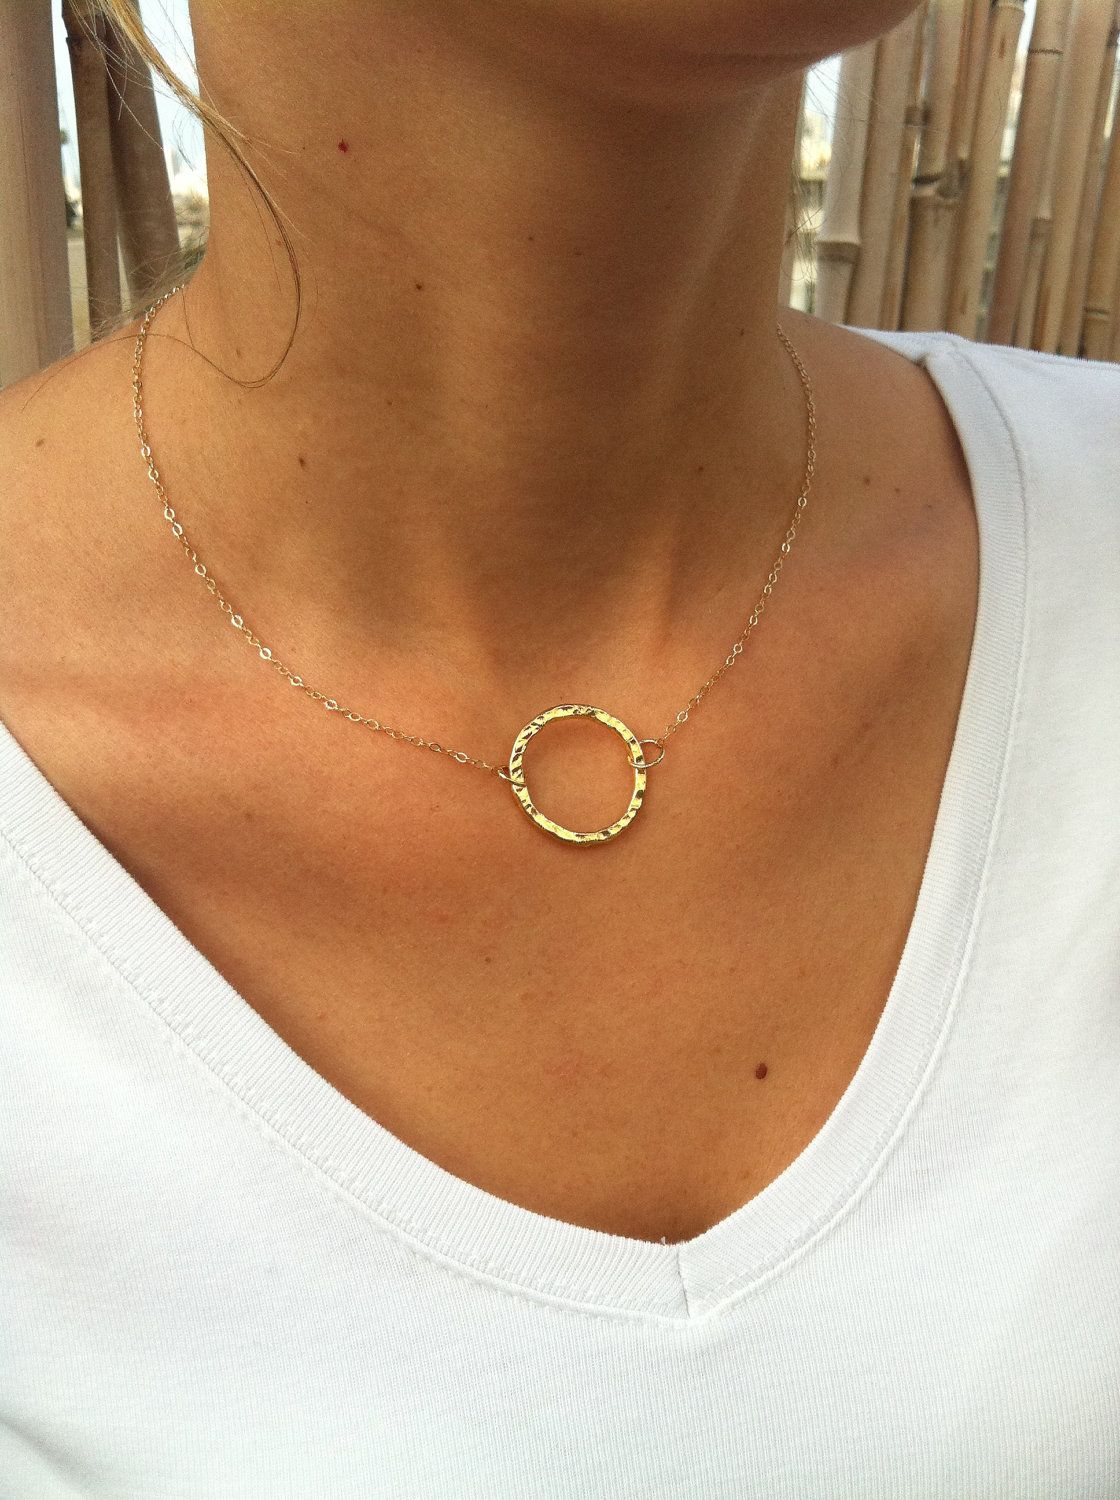 Gold circle necklace - Simple gold necklace, Gold eternity necklace, Ring necklace, Dainty gold necklace, Mothers gift, Delicate necklace